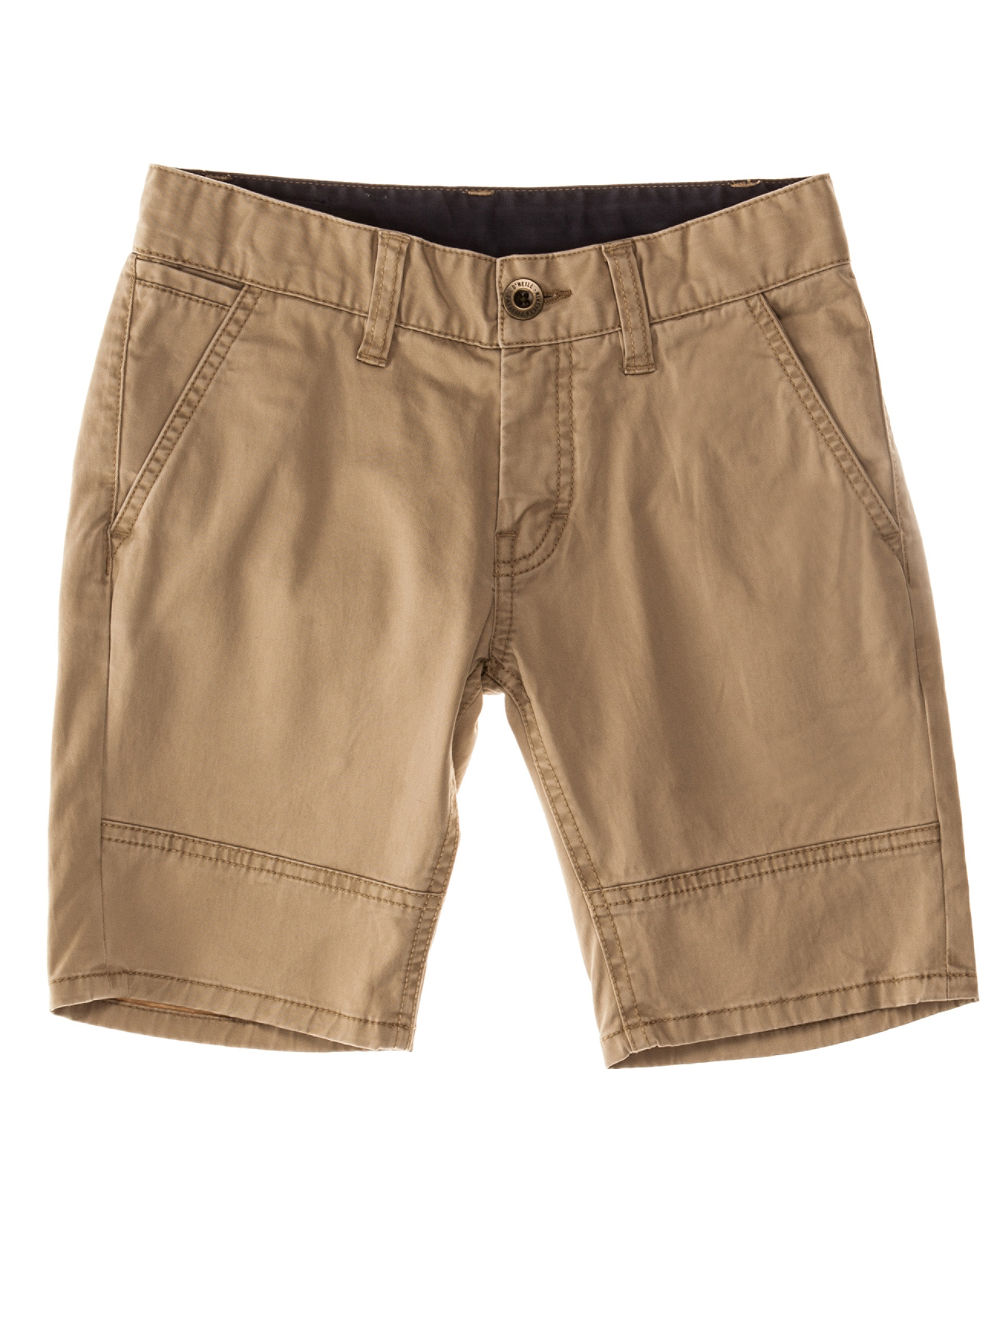 o-neill-friday-night-chino-shorts-boys